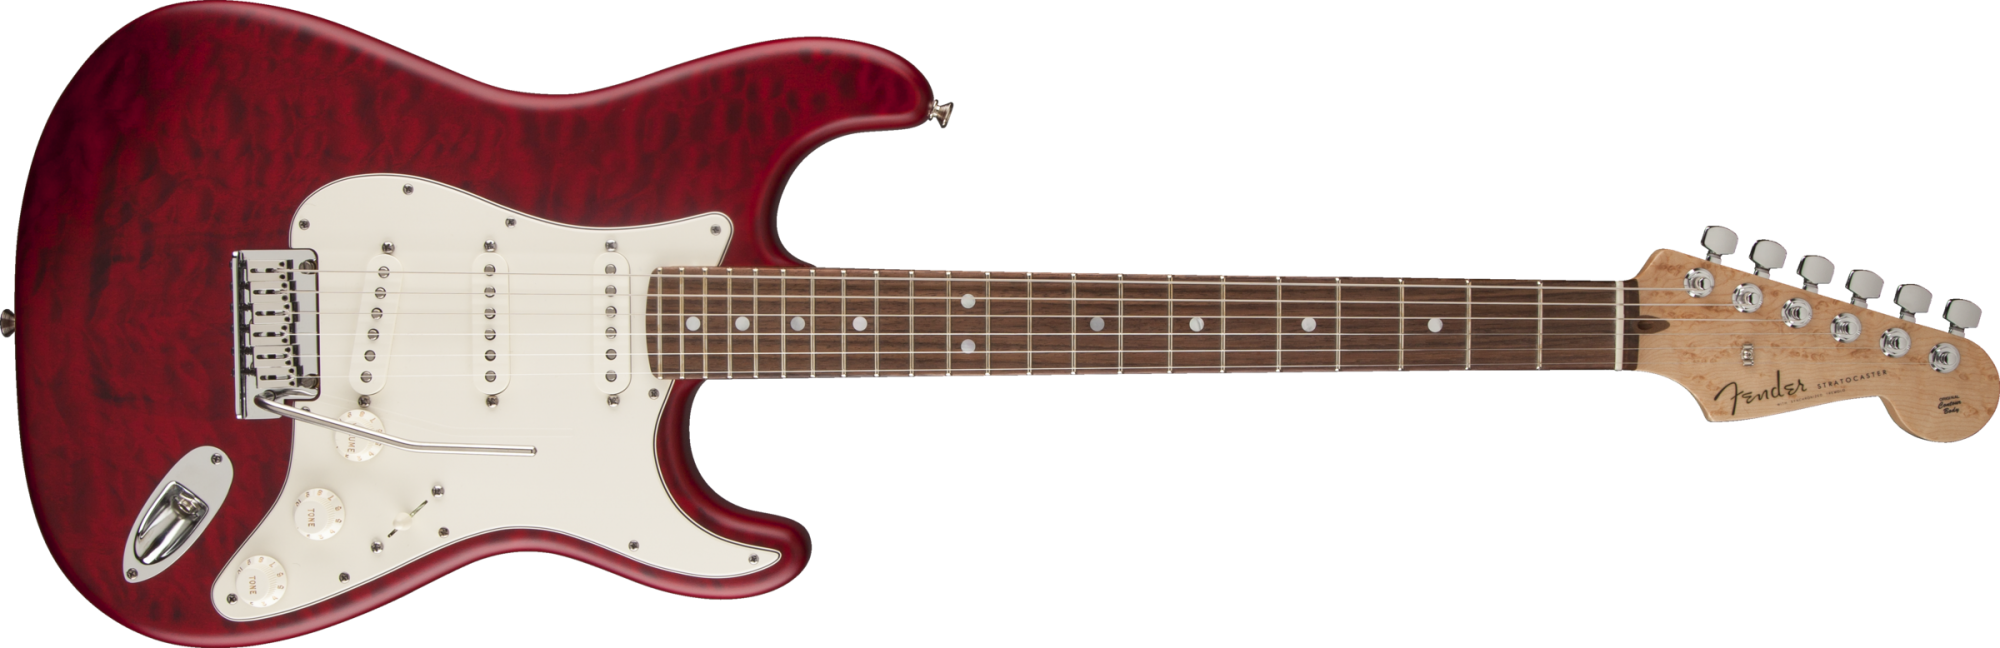 uploads electric guitar electric guitar PNG41 3